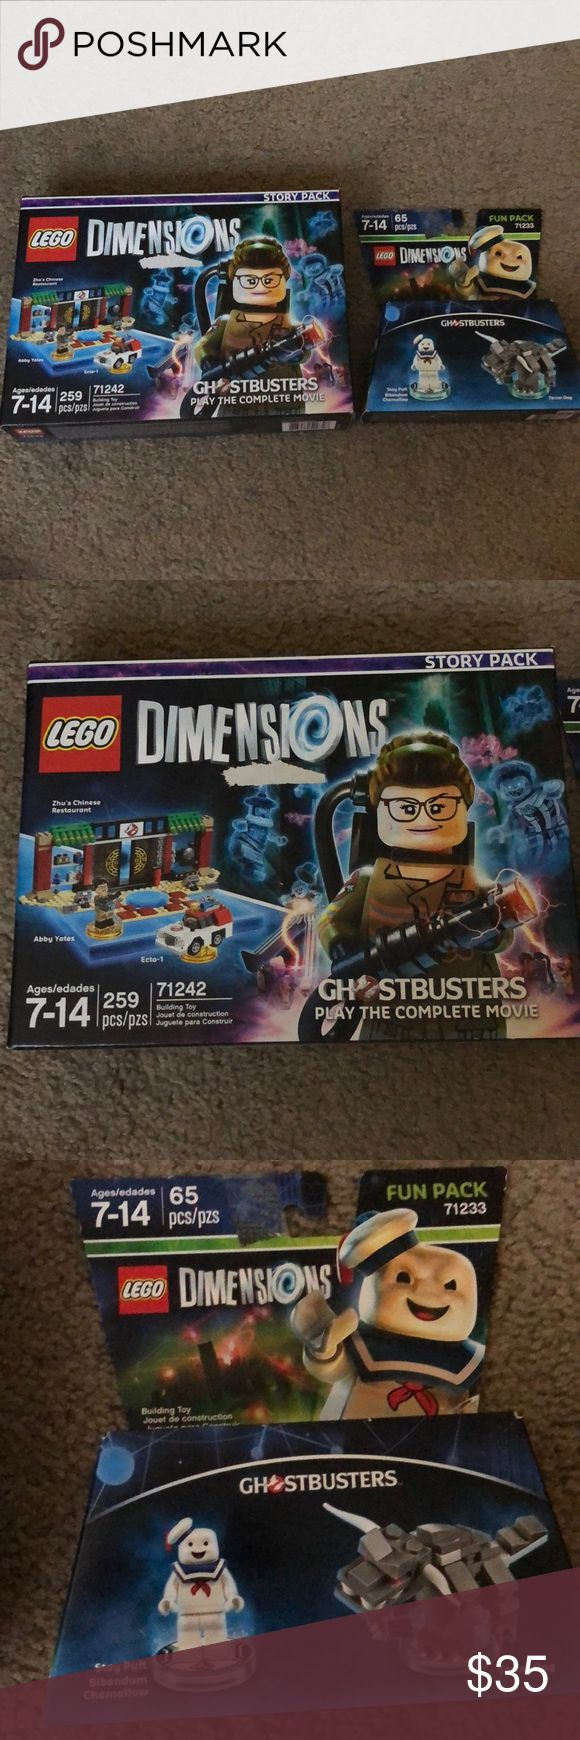 LEGO Dimensions New in box. never used. LEGO DIMENSIONS Ghostbusters story pack and fun pack. Fun pack is Stay Puft Bibendum Chamallow and Terror Dog. Ages 7-14. Lego Other